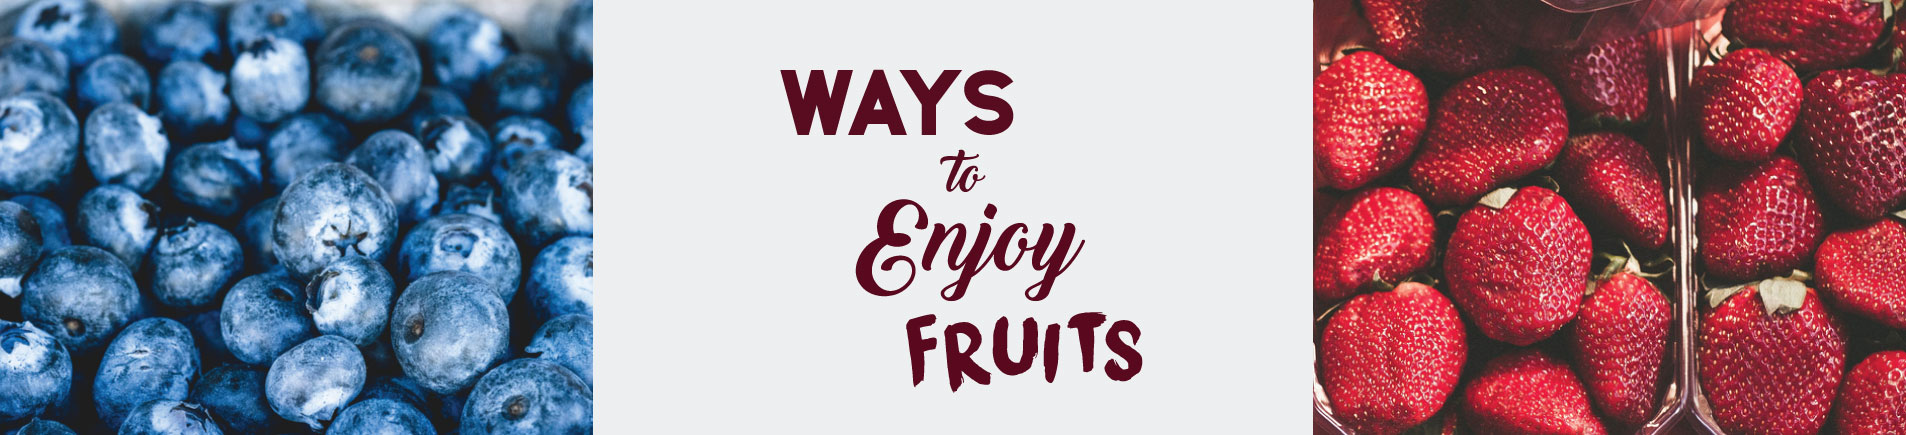 H5 Easy Ways to Turn Fruits into Delicious Guilt-Free Snacks